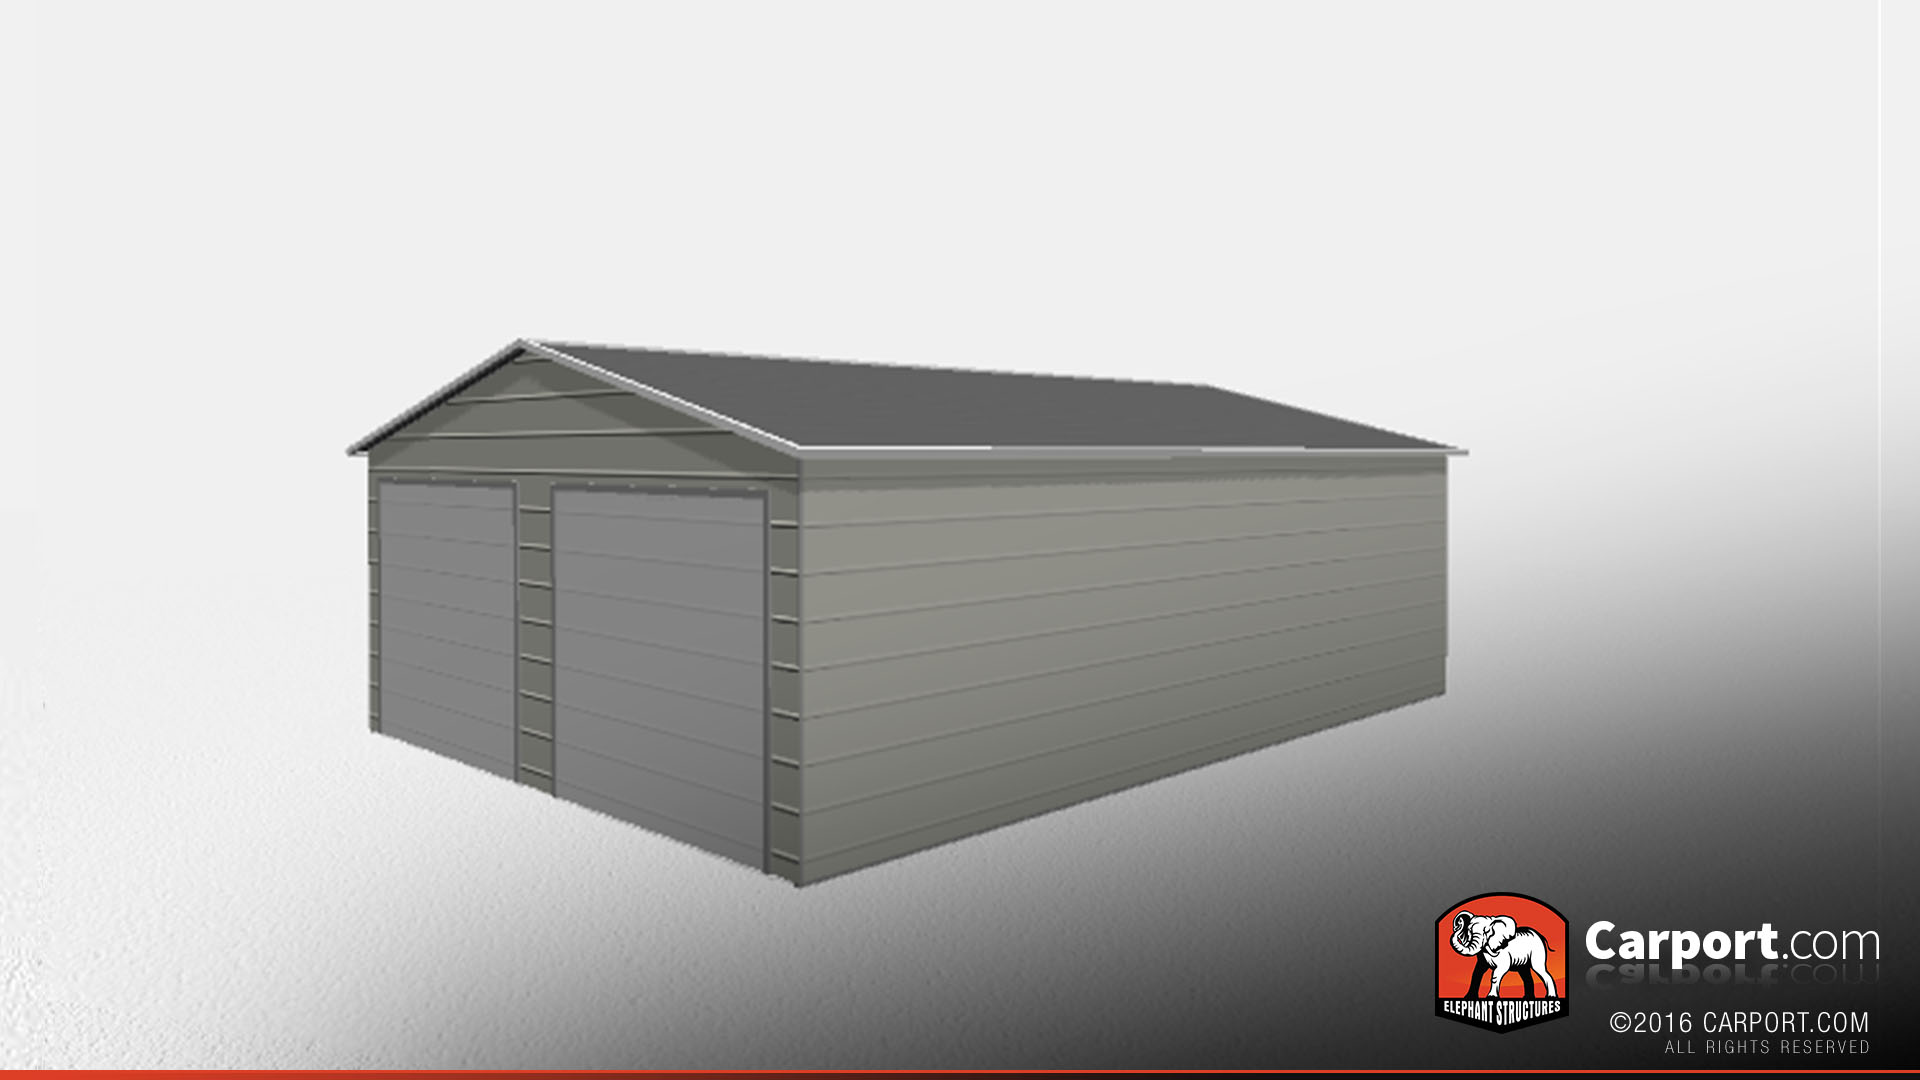 Custom three car garage 42 39 x 31 39 x 8 39 shop metal for Garage sn autos 42